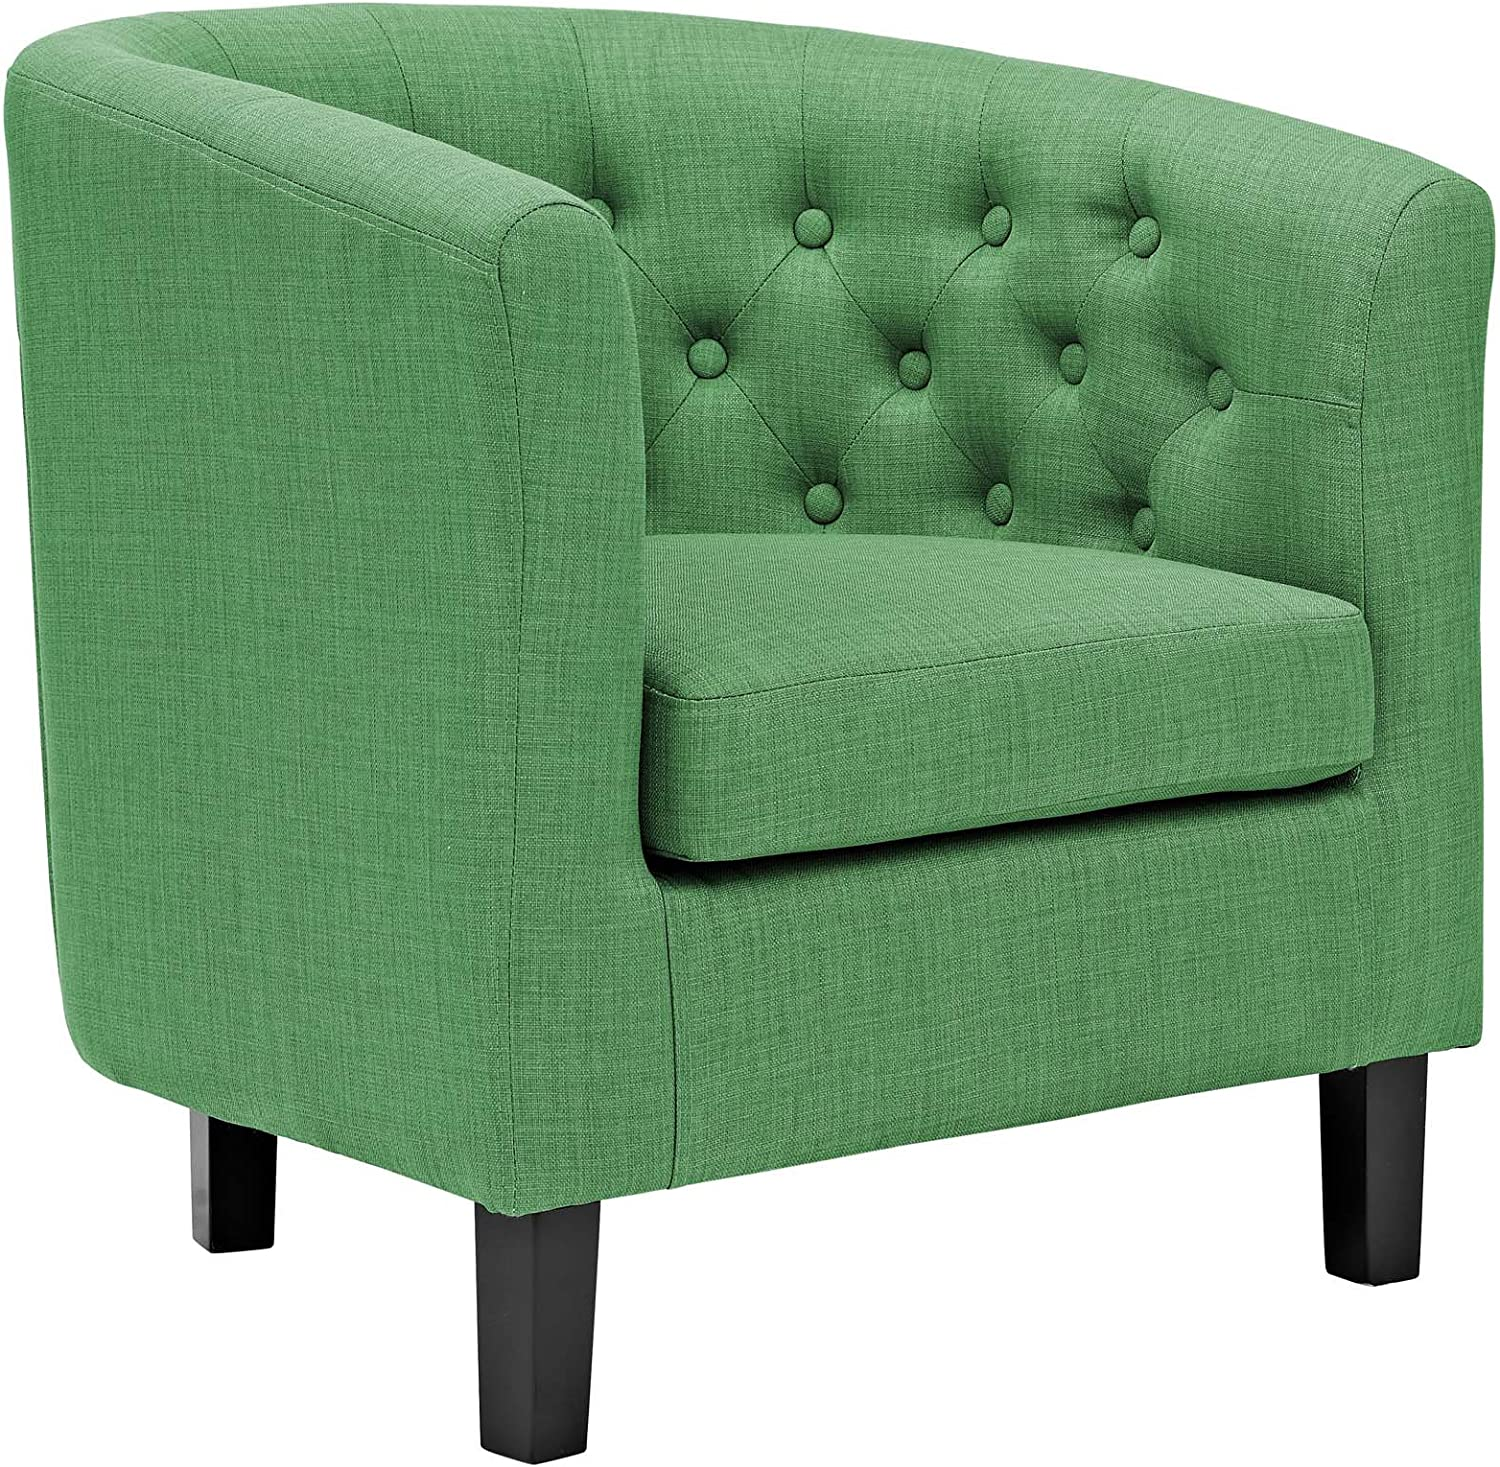 Modway Prospect Upholstered Fabric Contemporary Modern Accent Arm Chair in Kelly Green